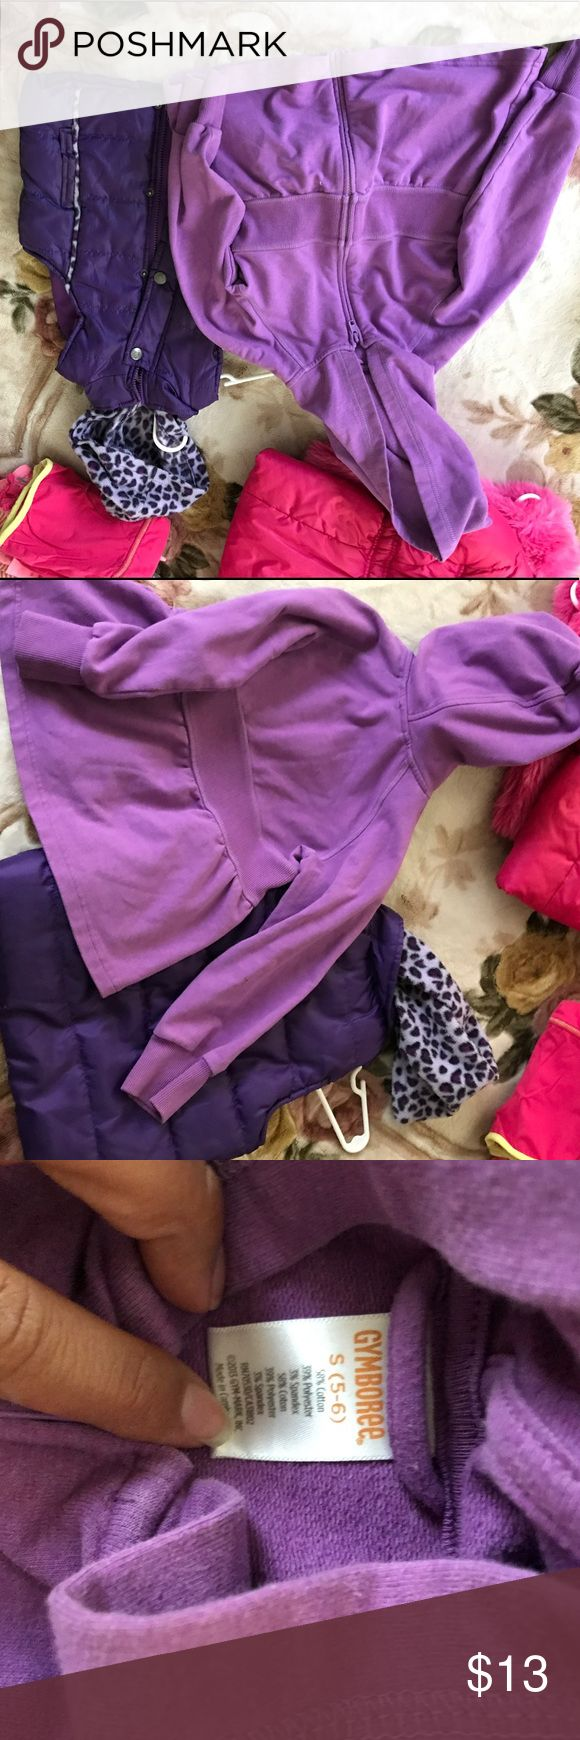 Gymboree purple sweater and purple vest Good condition purple Gymboree sweater 5-6 and Best with fleece leopard print hood 5-6. I will ship asap and thank you!! Gymboree Shirts & Tops Sweaters